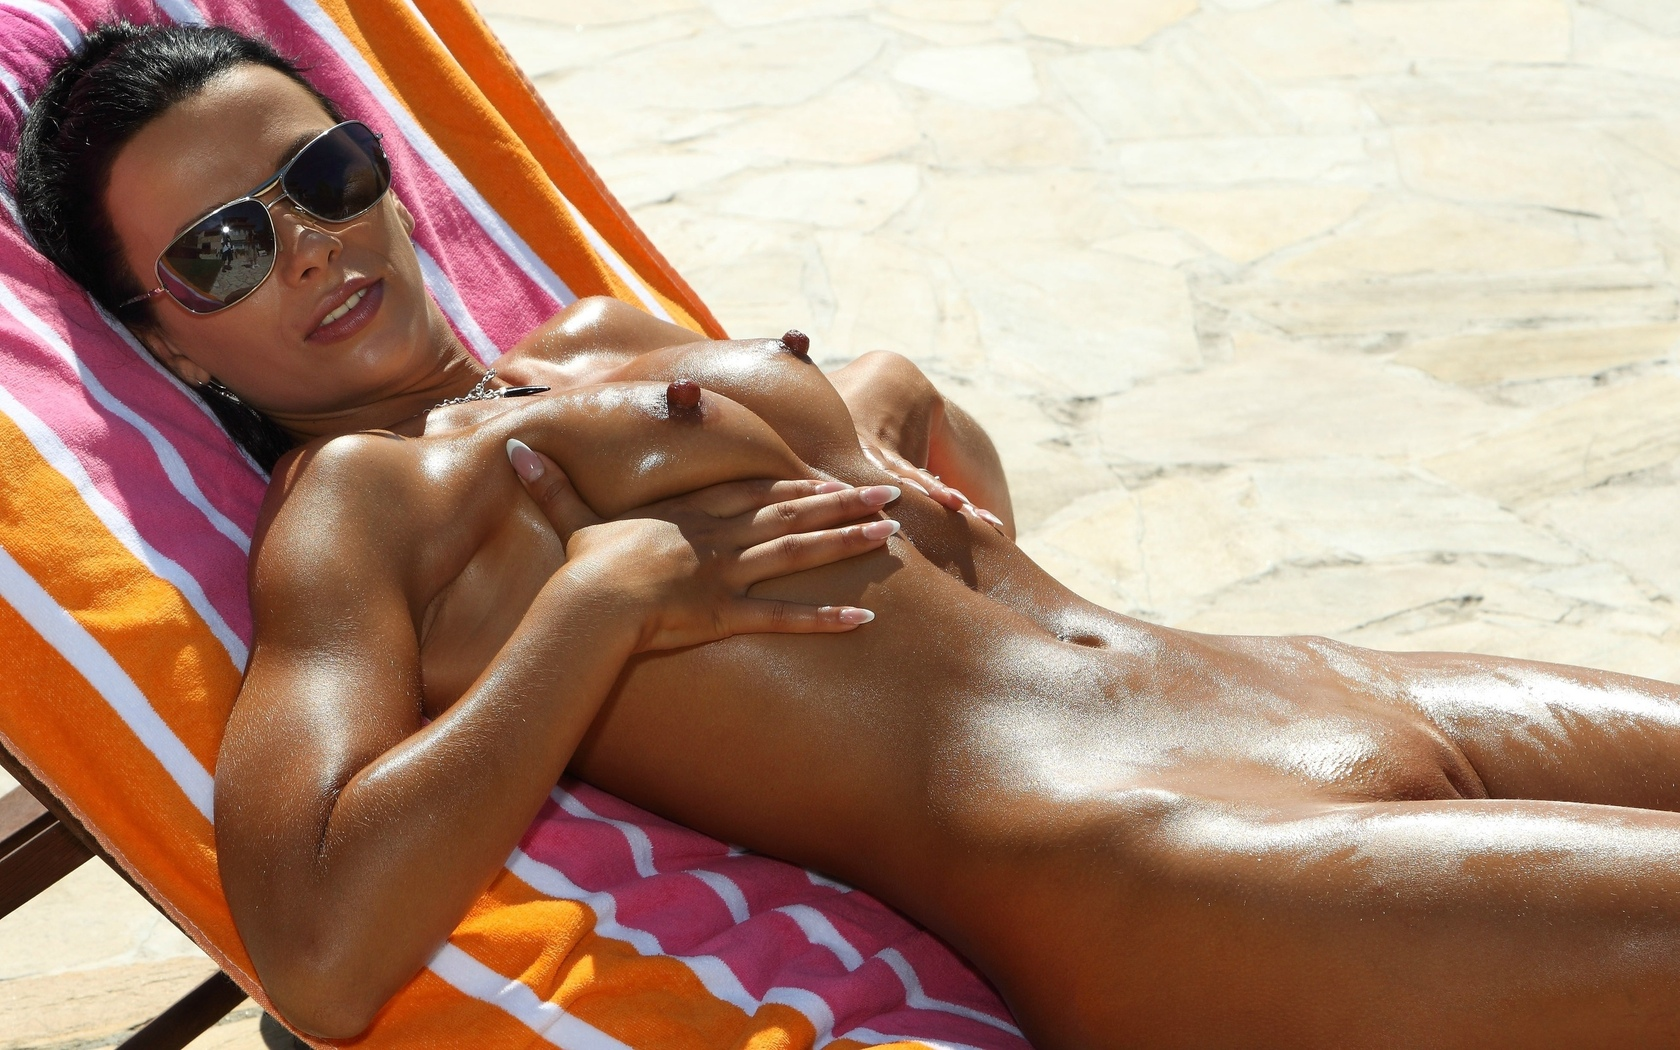 Sexy milf tanning topless